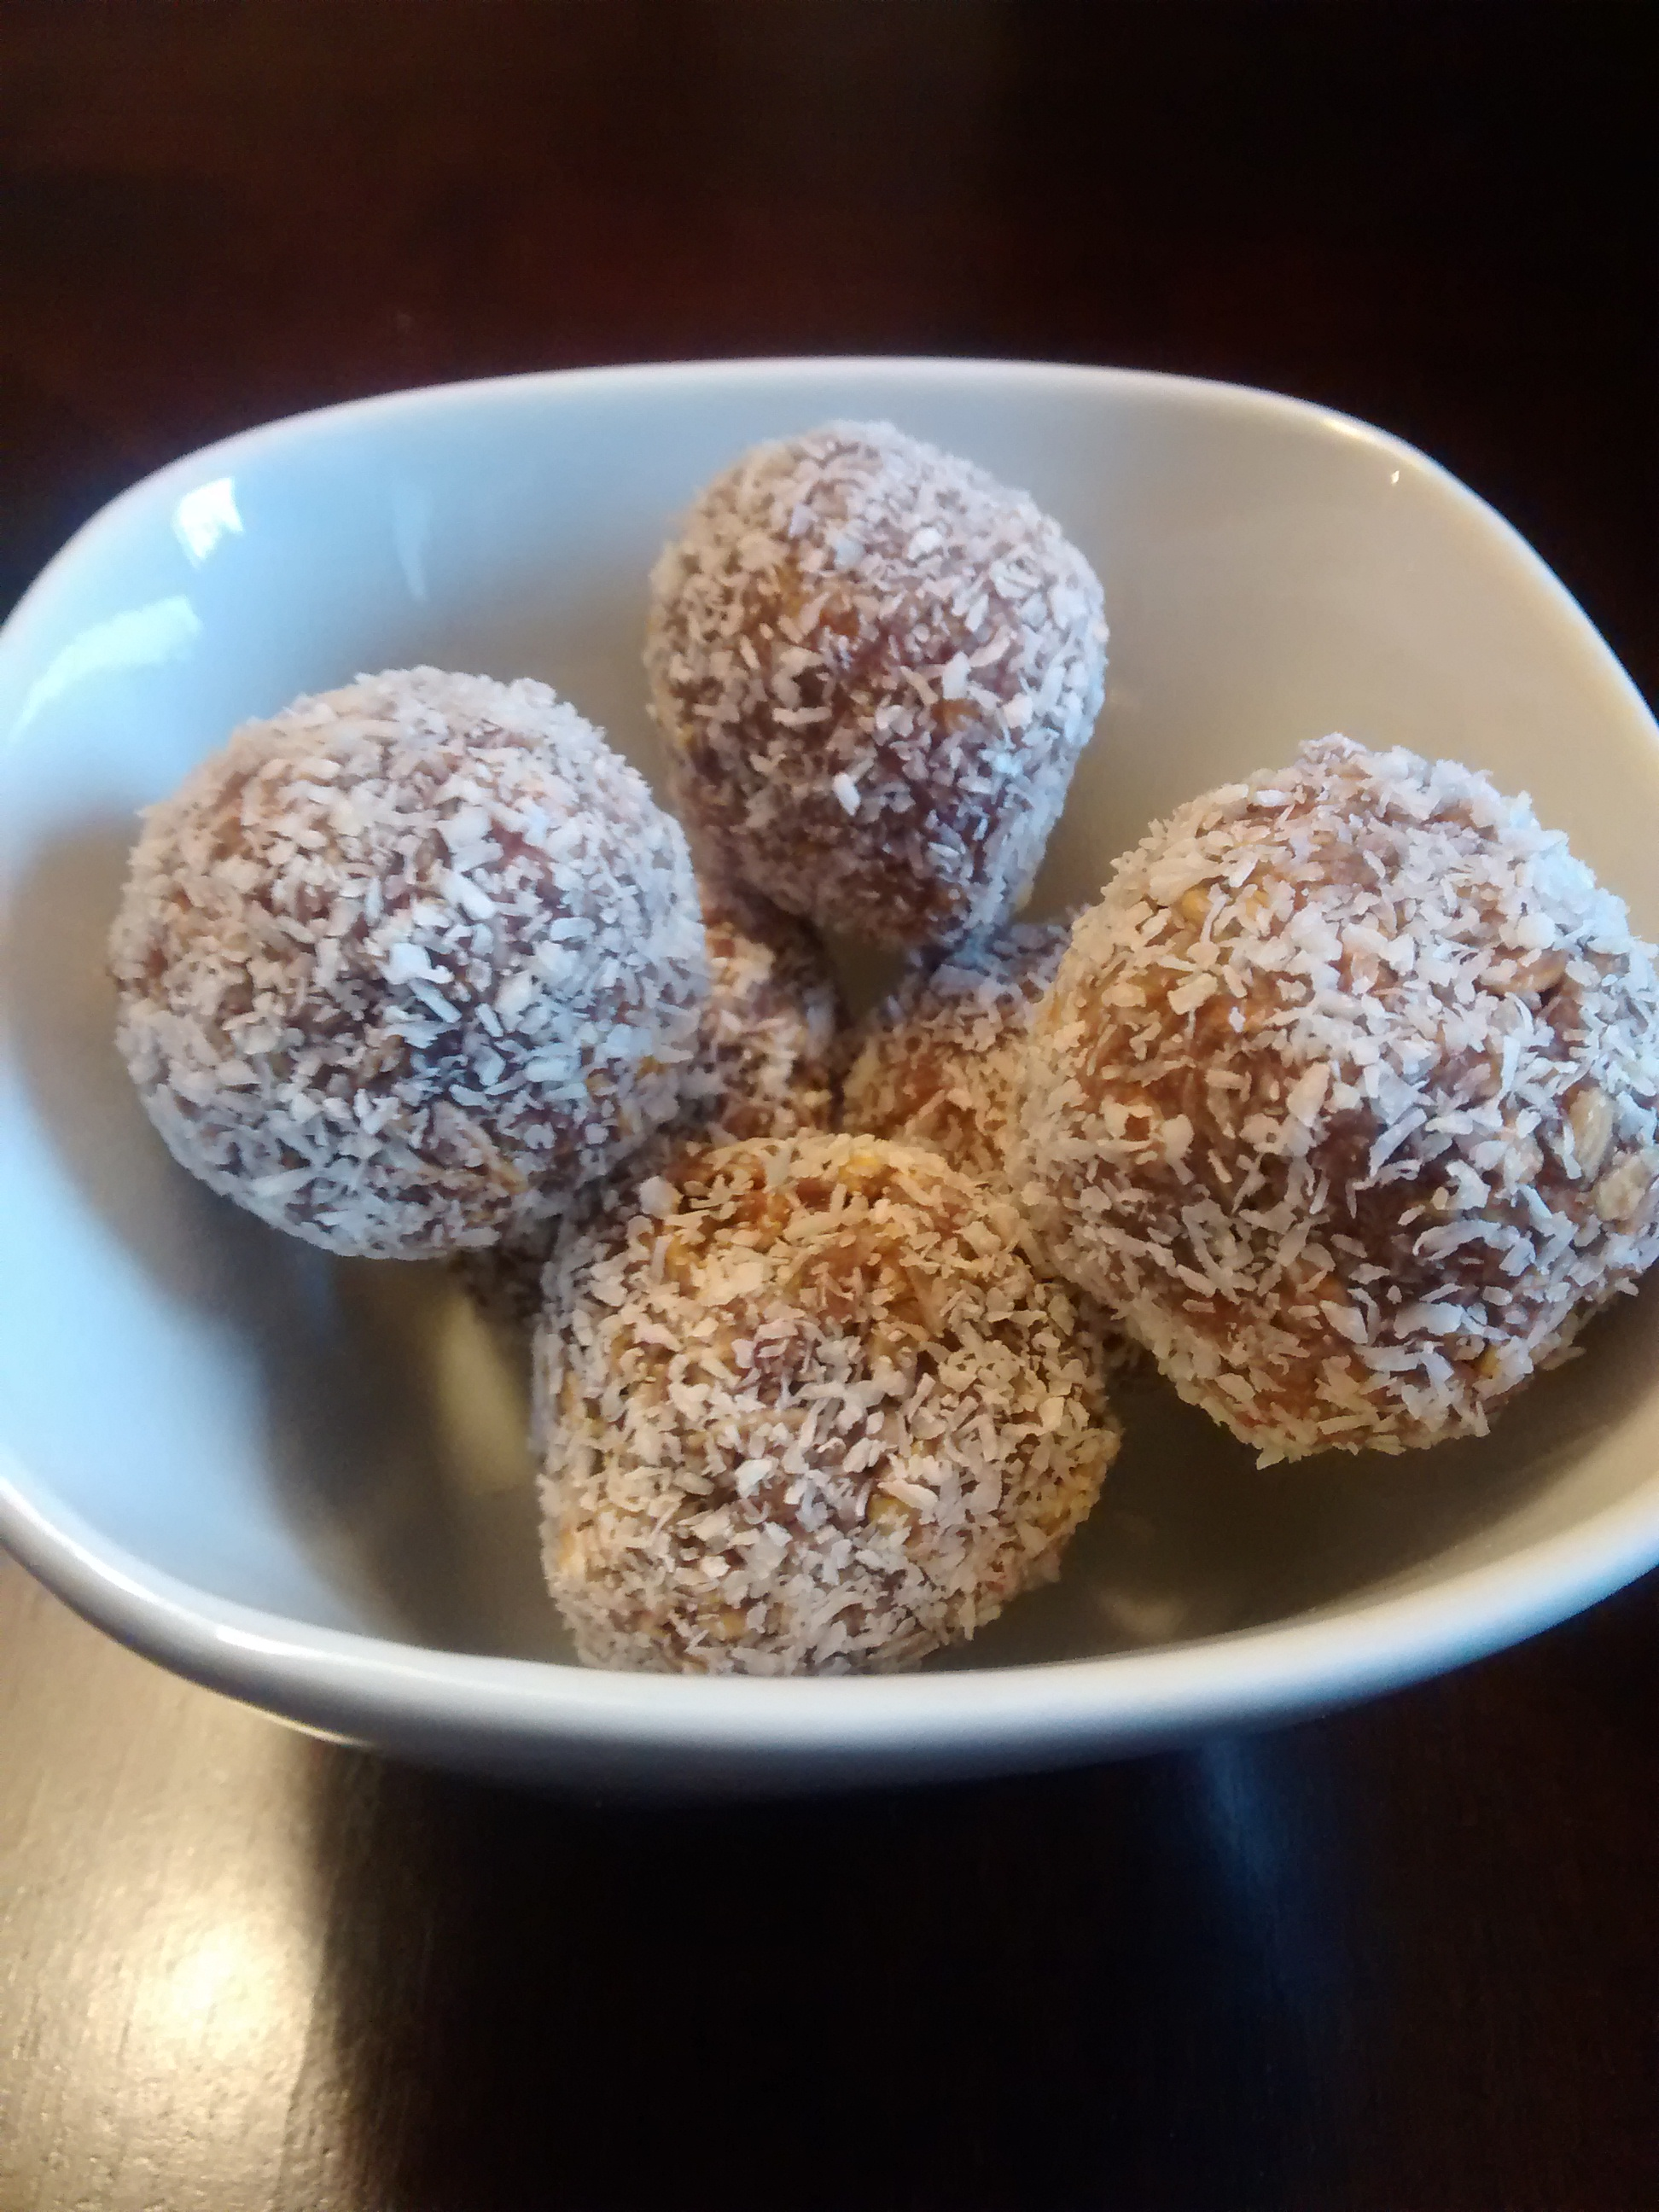 Snowball Cookies rolled in flaked coconut and piled in a white ceramic bowl